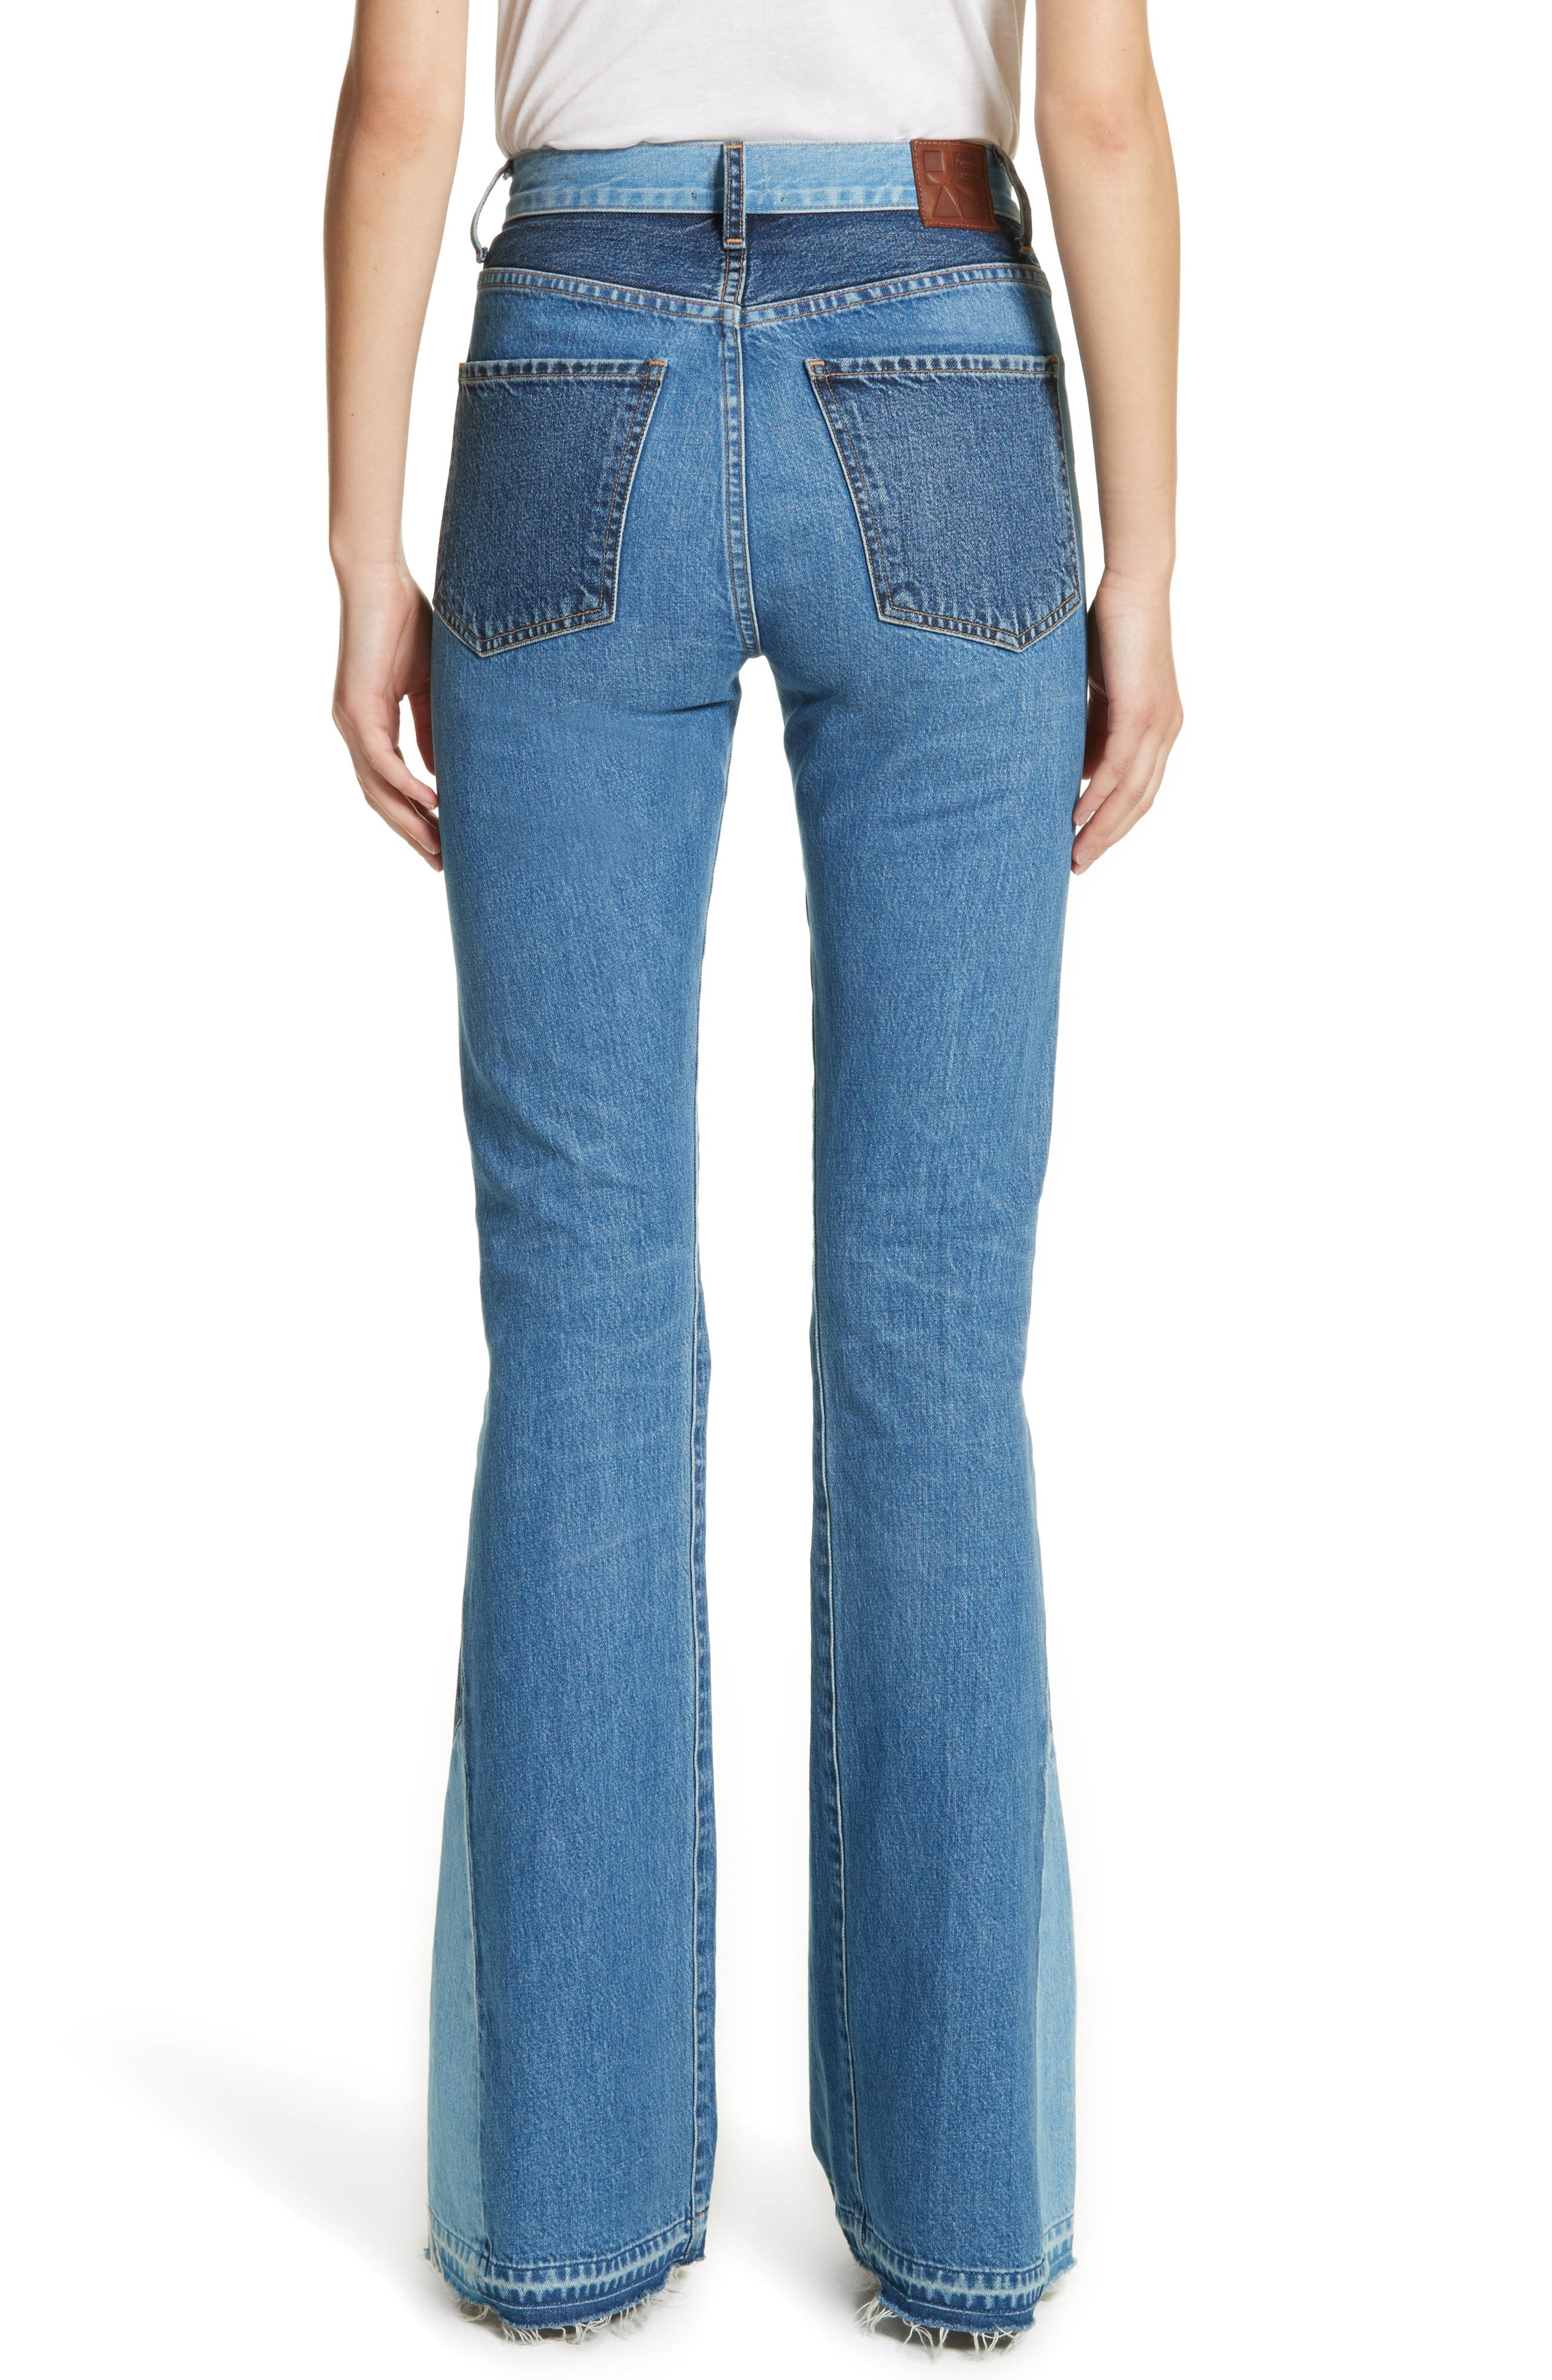 Janis High Rise Flare Jeans,                             Alternate thumbnail 2, color,                             JAGGER